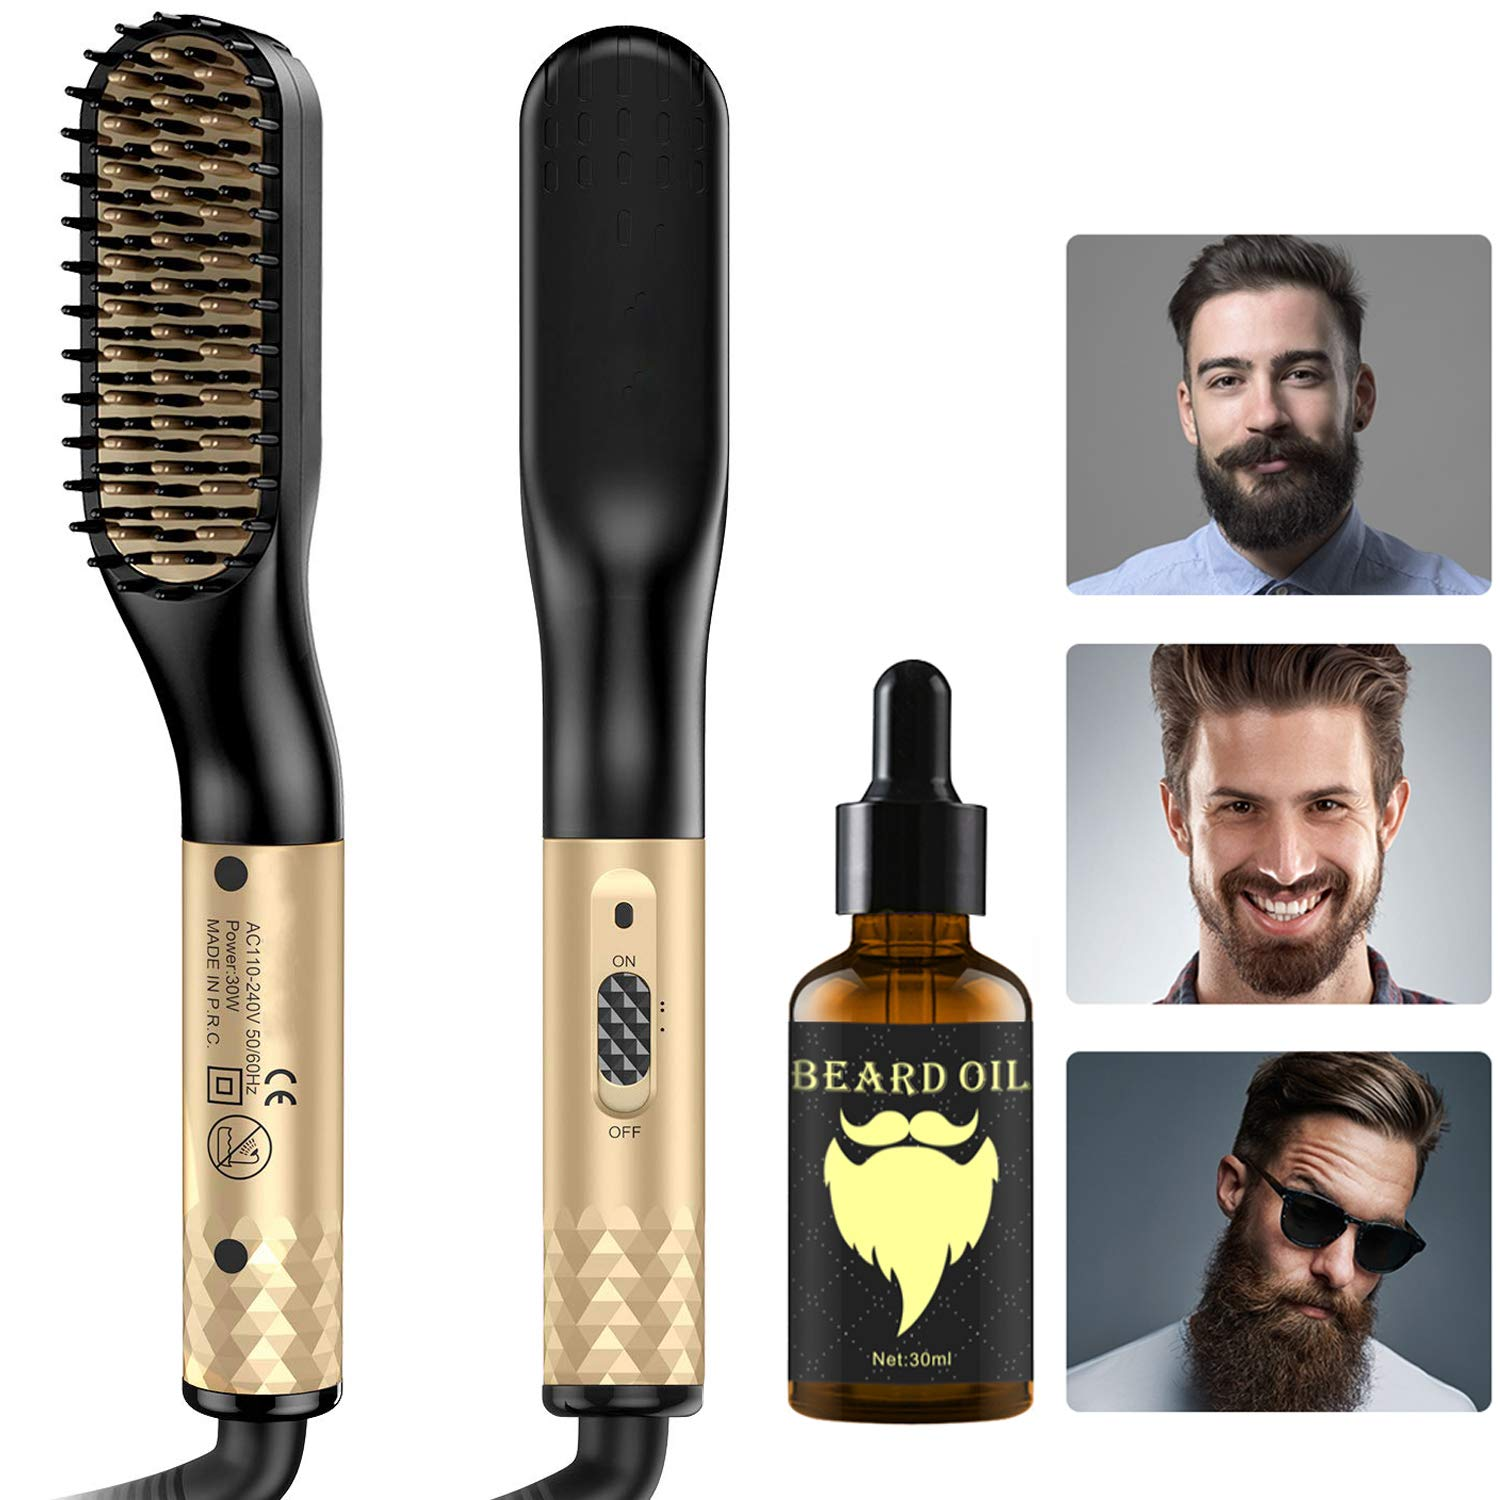 Beard Straightener, Hair Straightener Brush, Quick Electric Heated Hair Comb Kit with Beard Oil, Hot Ionic Hair Straightening Comb, Great Gift for Men